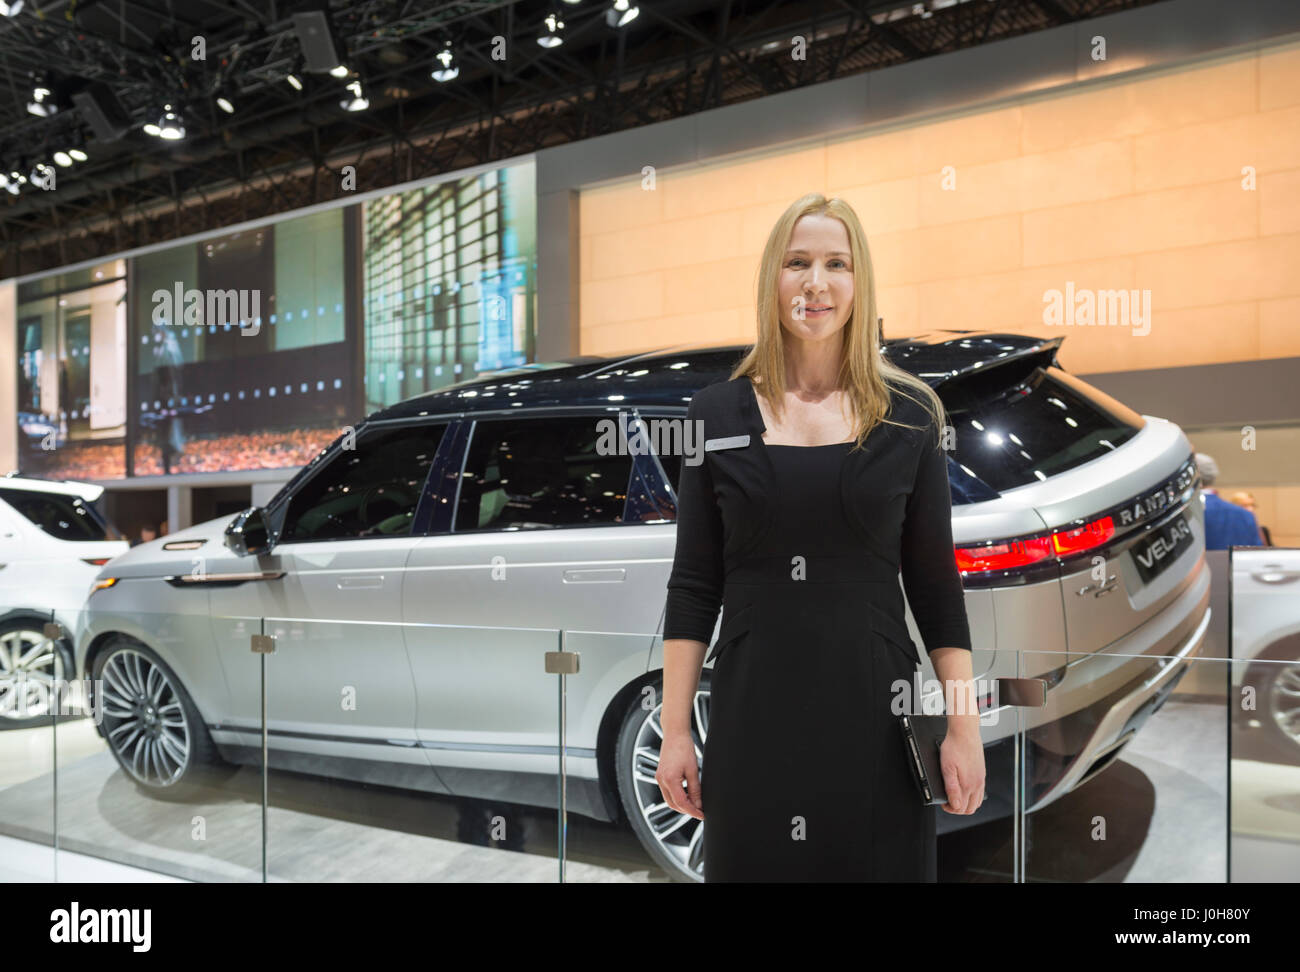 Manhattan, New York, USA. April 12, 2017. Female rep stands in front of Land Rover 2018 Range Rover VELAR, medium Stock Photo